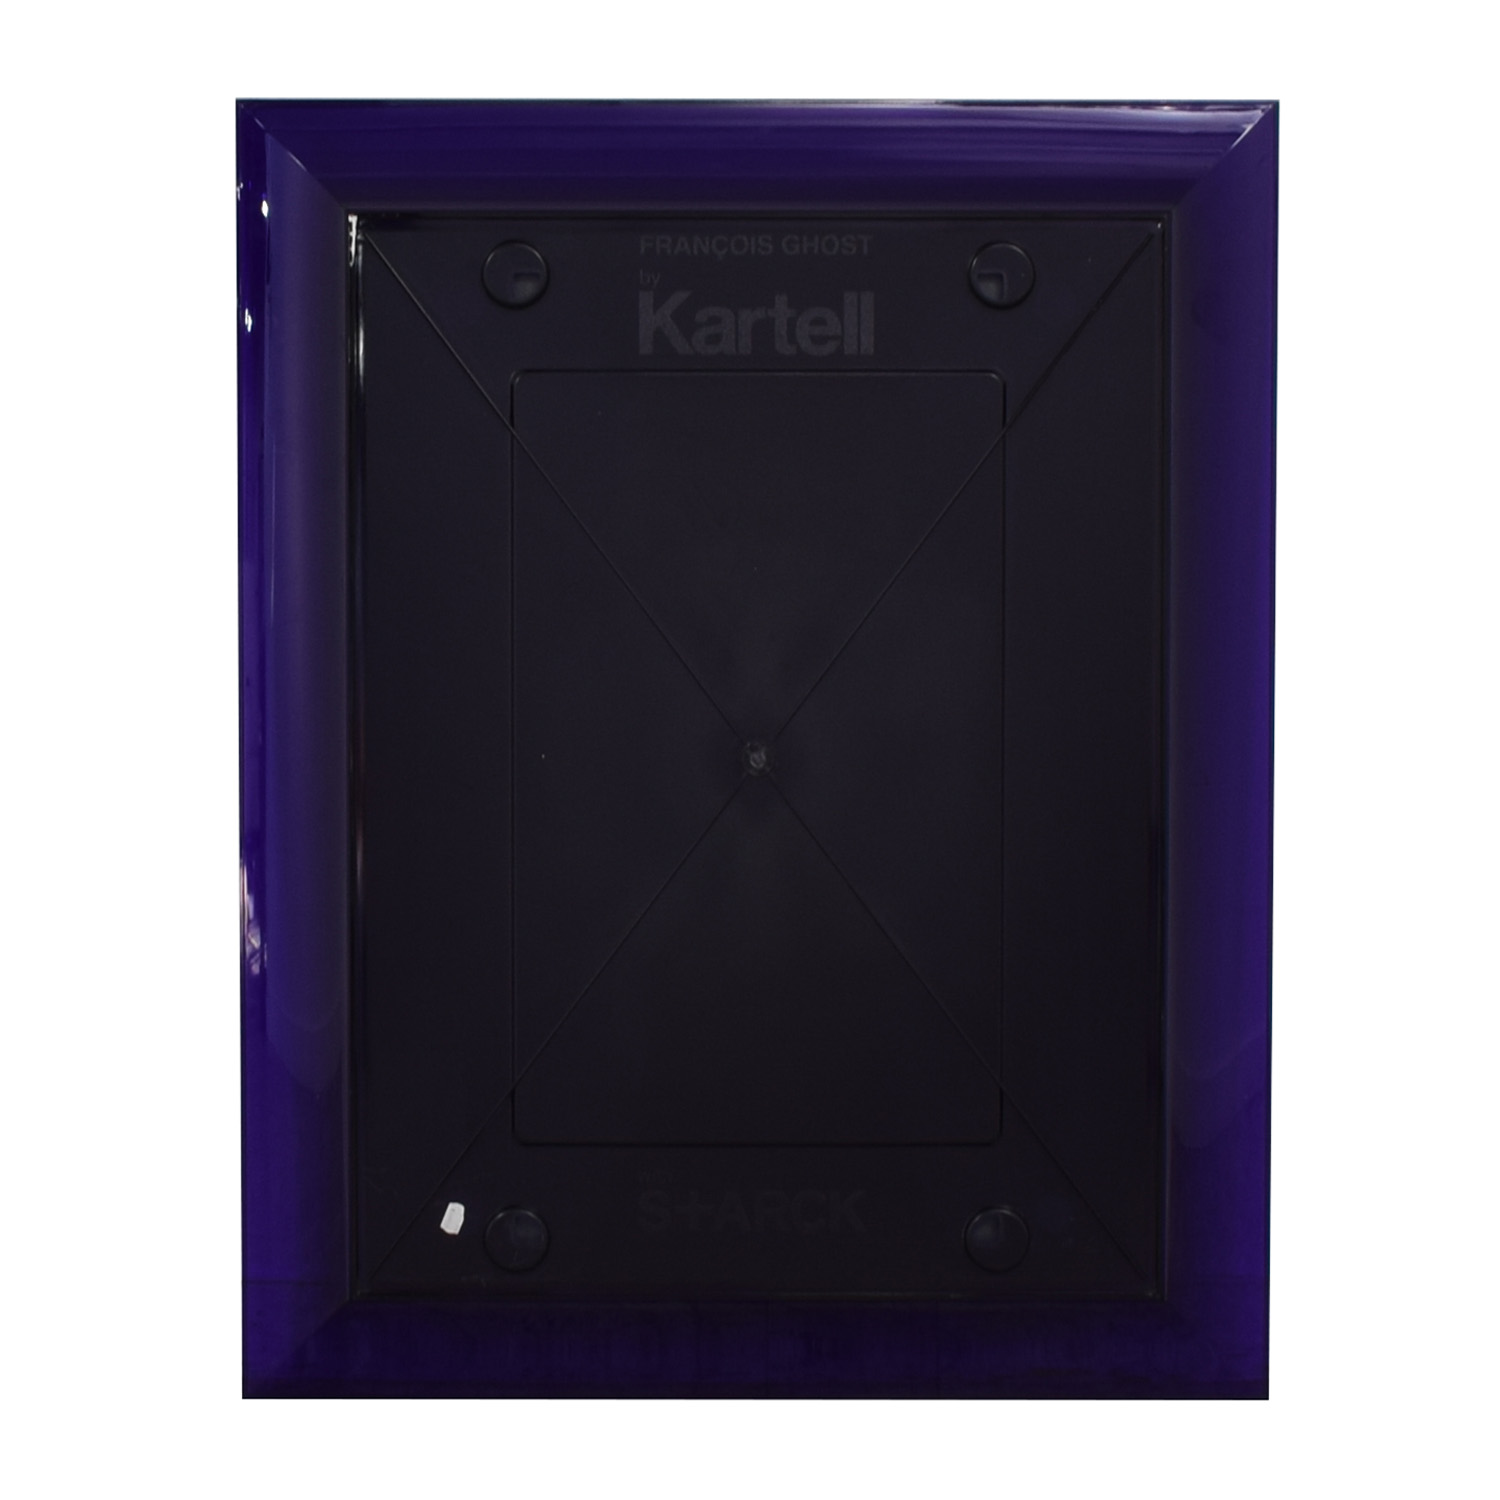 buy Kartell Philippe Starck Francois Ghost Tall Purple Mirror Kartell